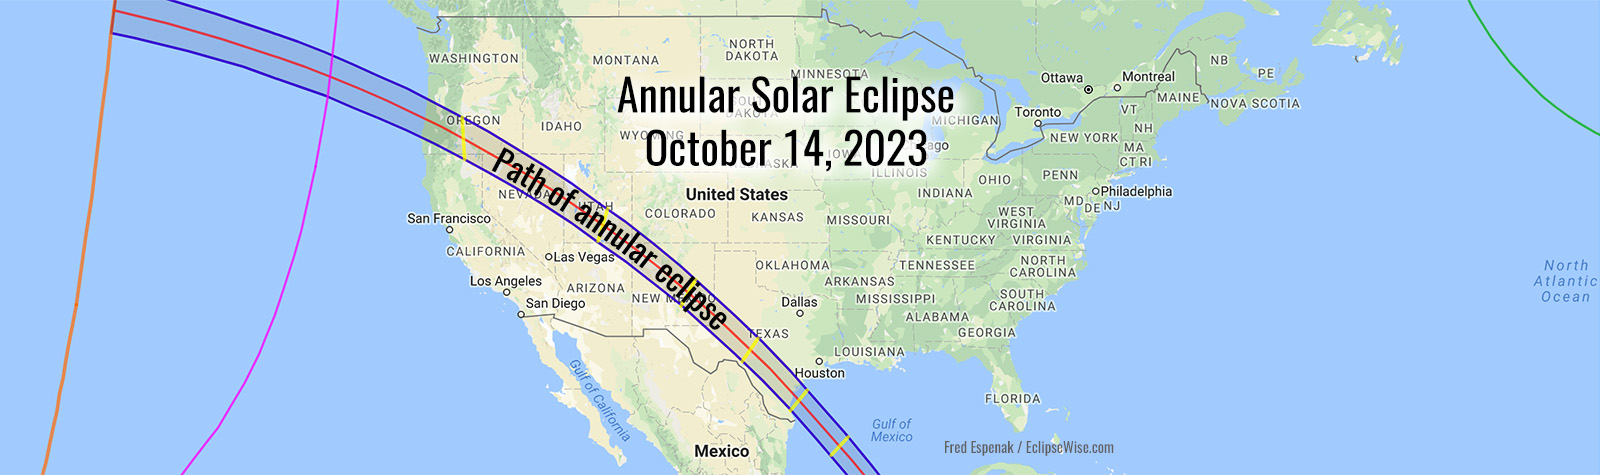 Map of 2023 Annular Solar Eclipse